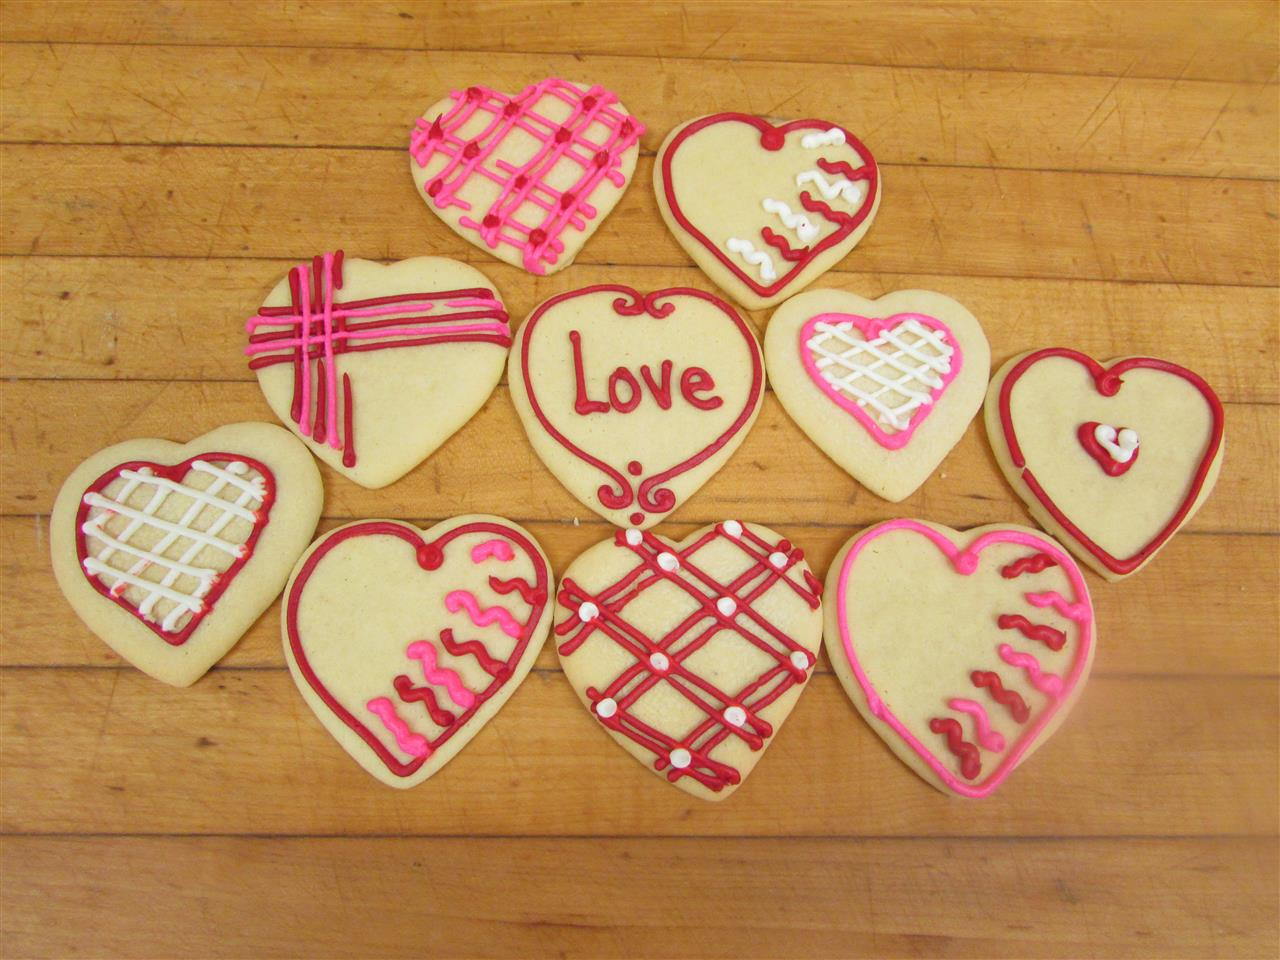 Sugar cookies in the shape of hearts decorated in pink,white and purple frosting